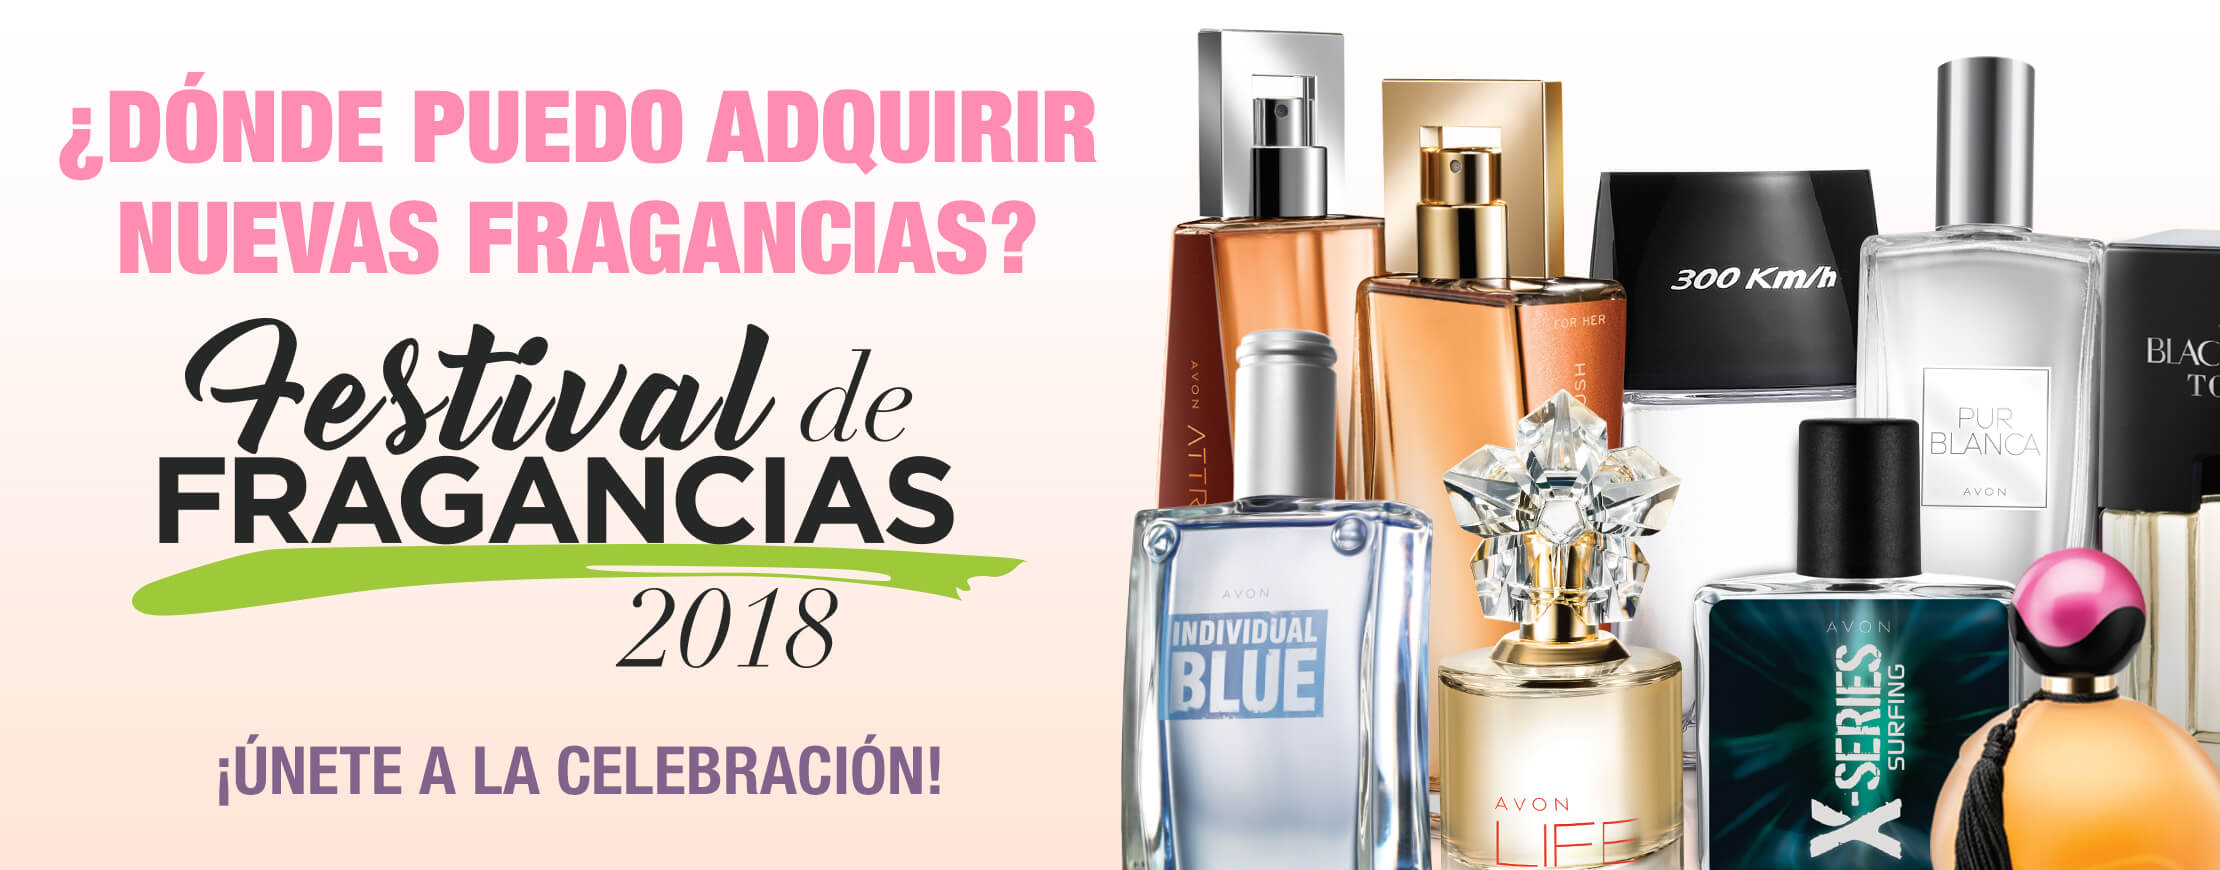 Fragancias Avon 2018